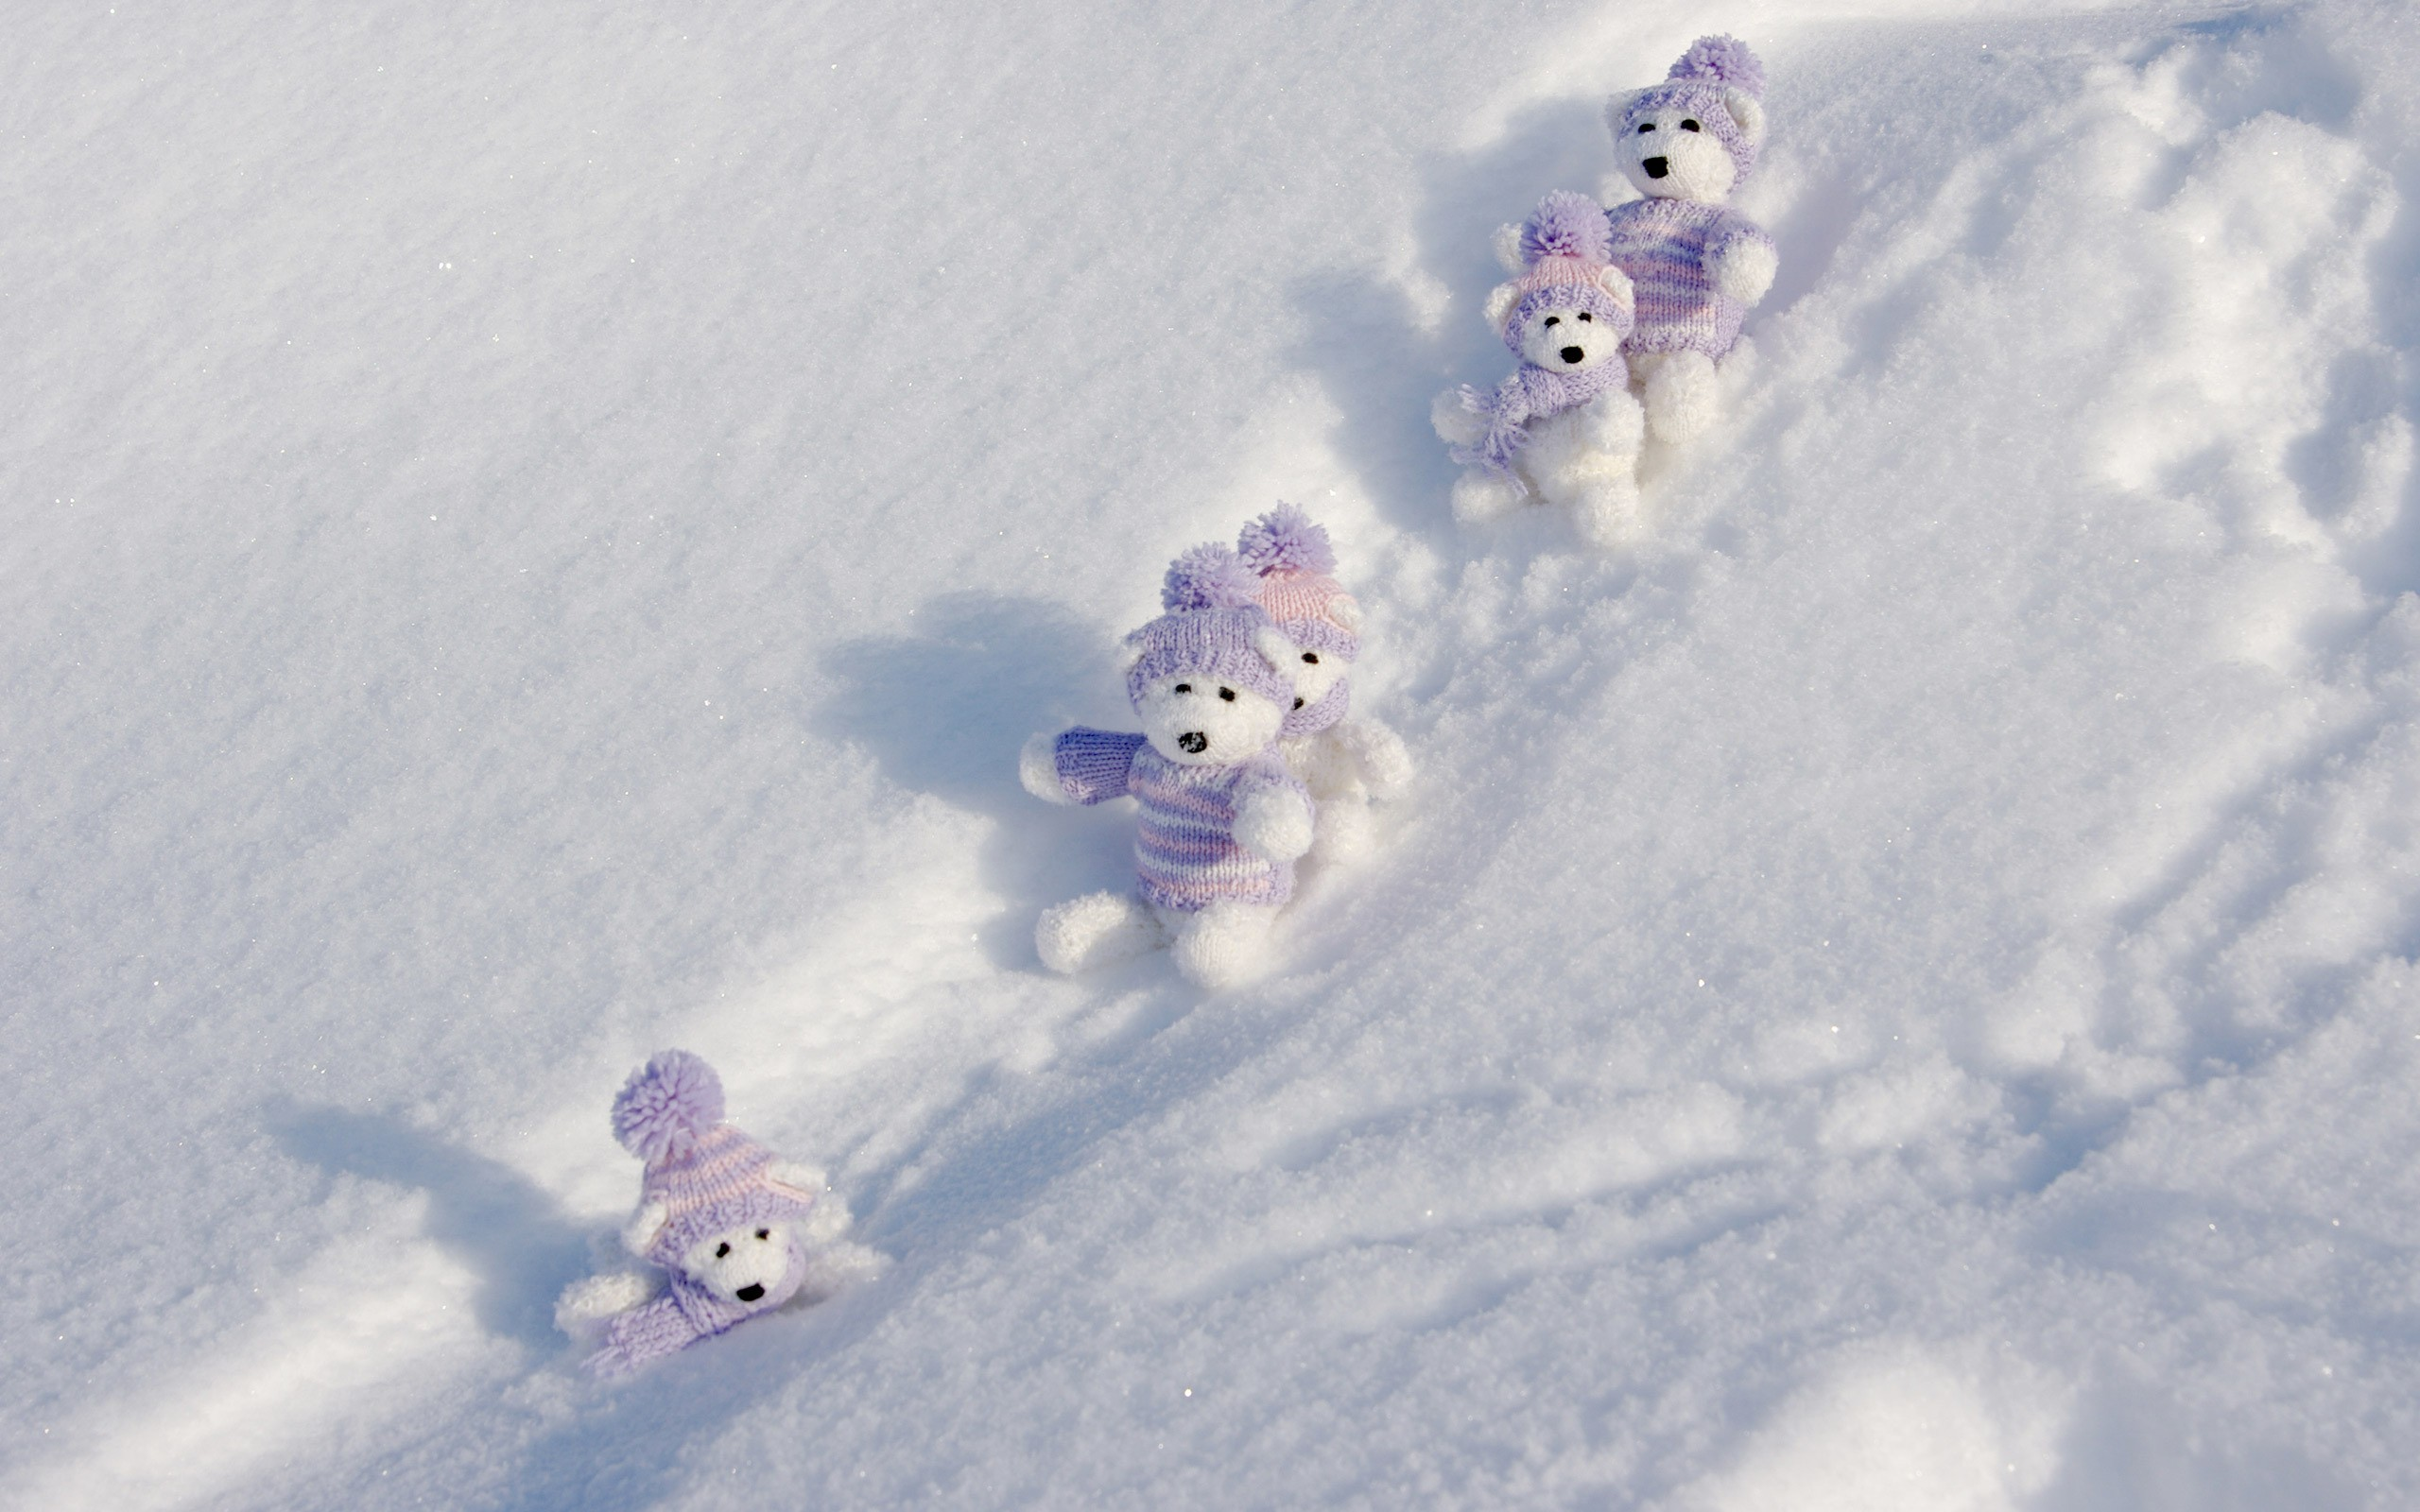 Winter Teddy Bears wallpapers Winter Teddy Bears stock photos 2560x1600